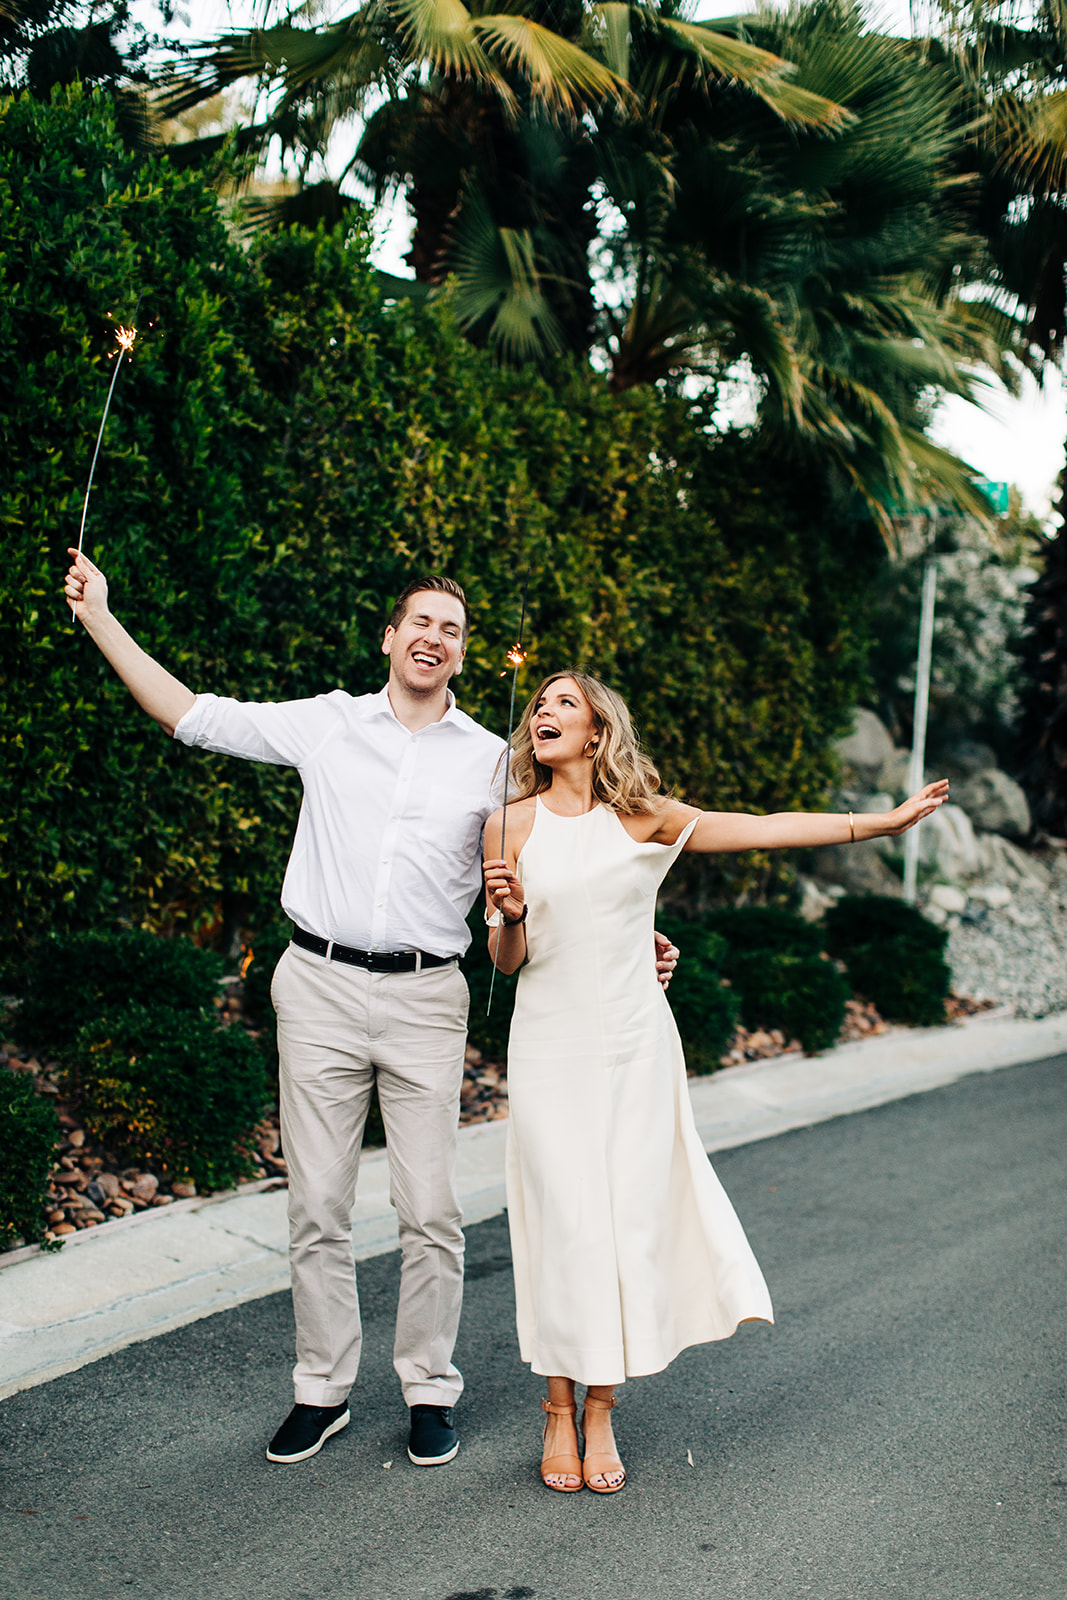 Paulina-Drew_Palm-Springs-Engagement-Photos_Clarisse-Rae_Southern-California-Wedding-Photographer-48